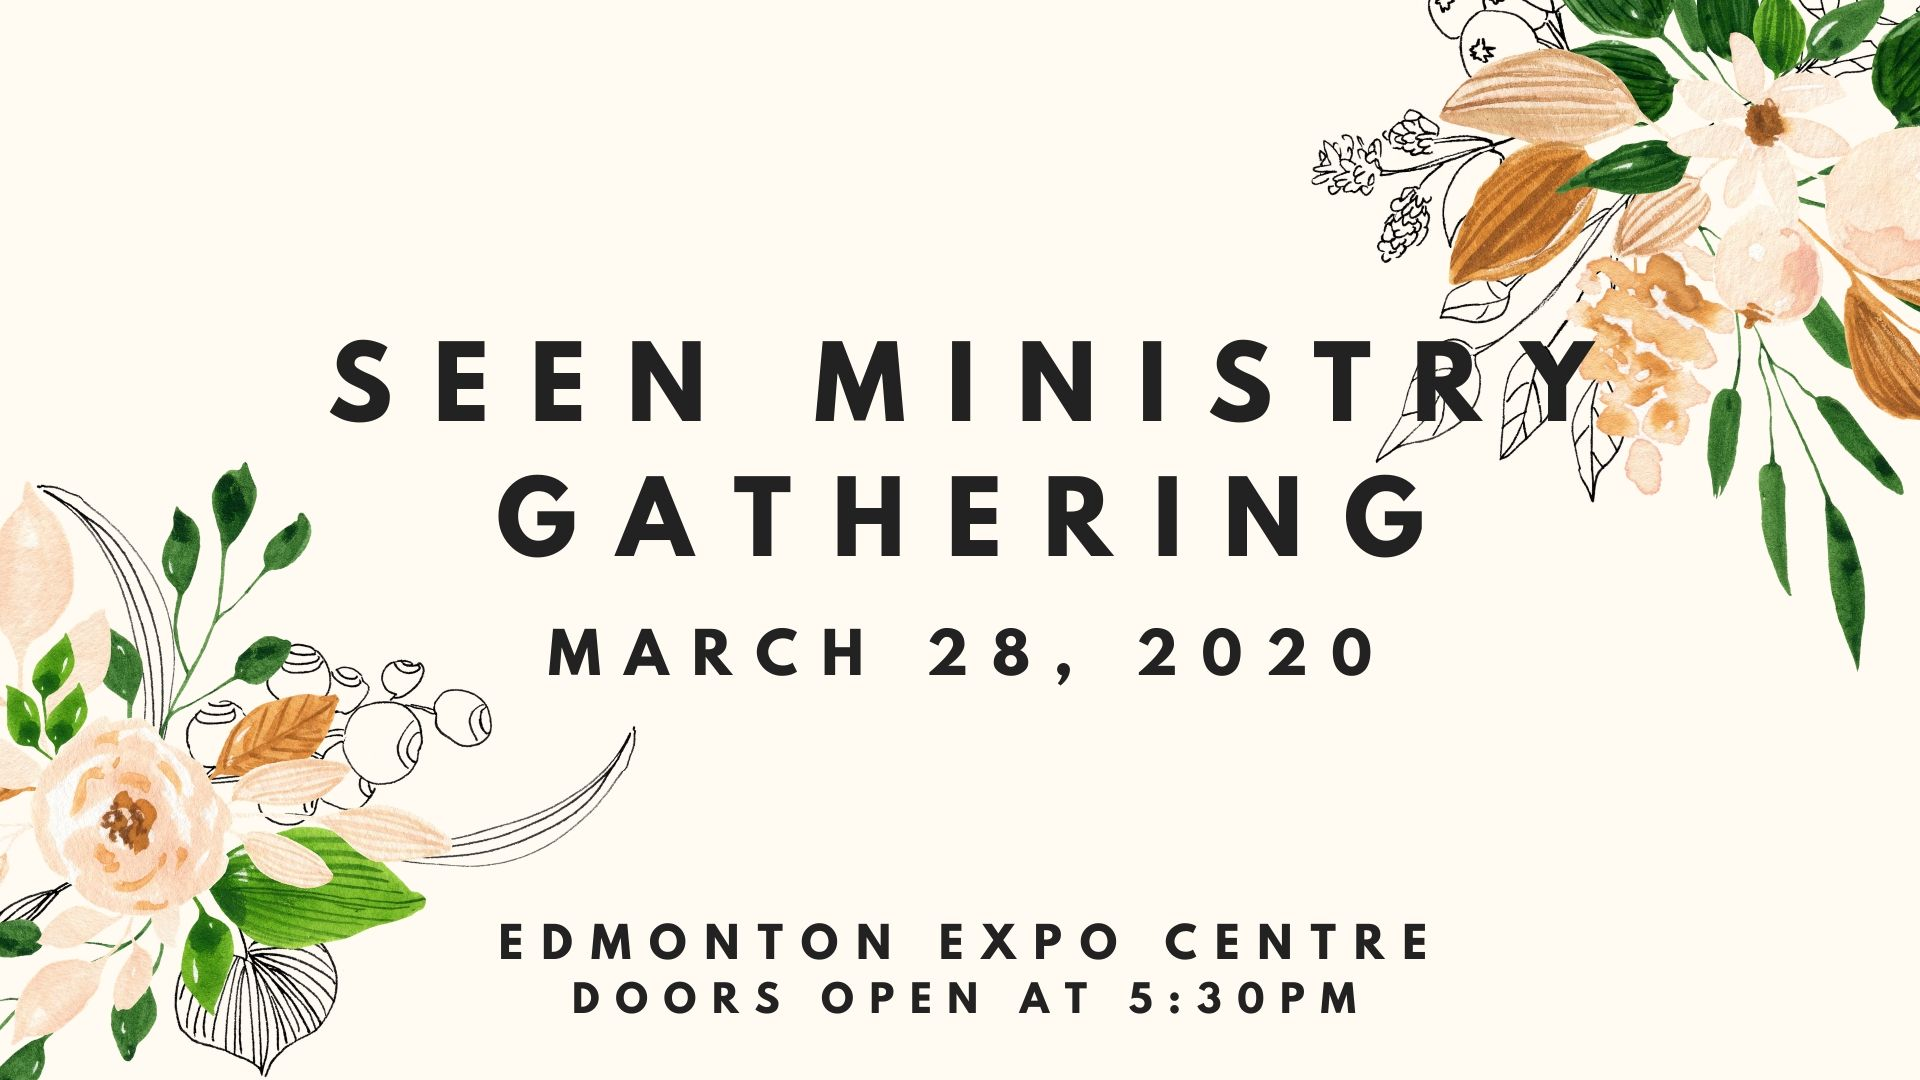 Seen Ministry Gathering March 2020